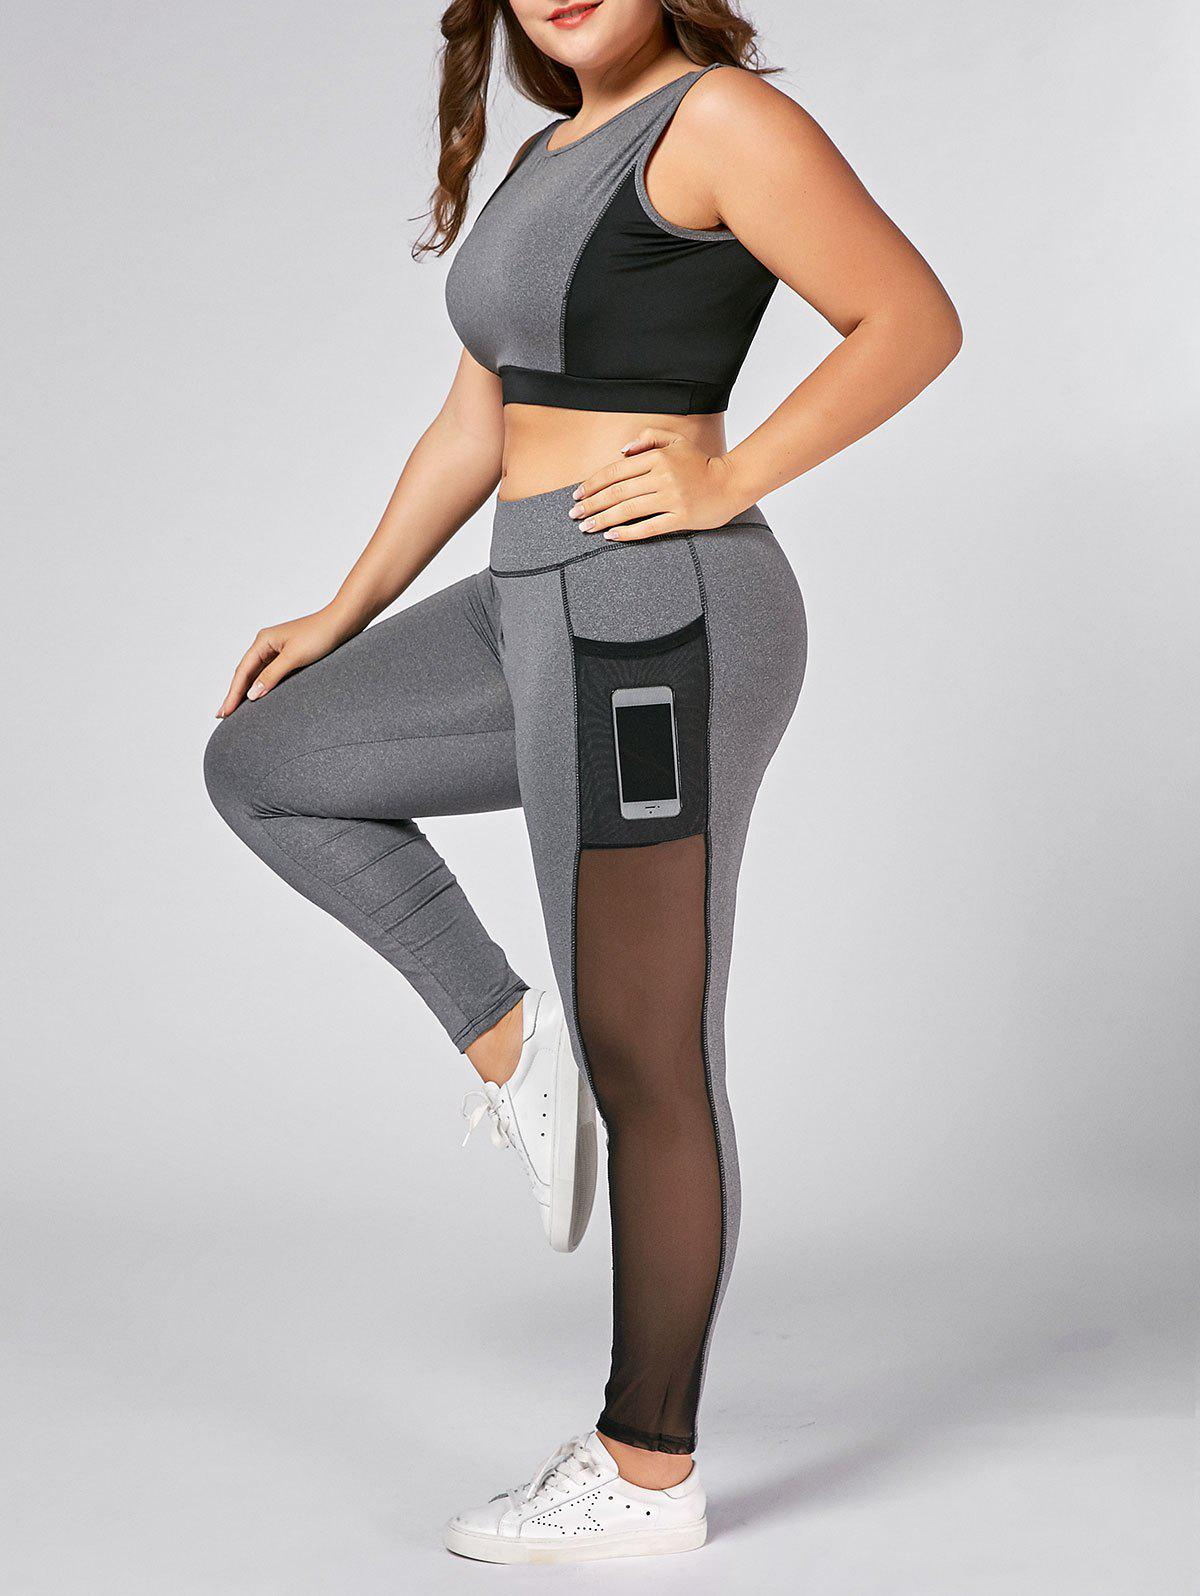 Plus Size Wirefree Yoga Bra and Mesh Panel LeggingsWOMEN<br><br>Size: 5XL; Color: GRAY; Material: Polyester; Shirt Length: Short; Sleeve Length: Sleeveless; Pattern Style: Others; Weight: 0.4500kg; Package Contents: 1 x Sports Bra 1 x Leggings;